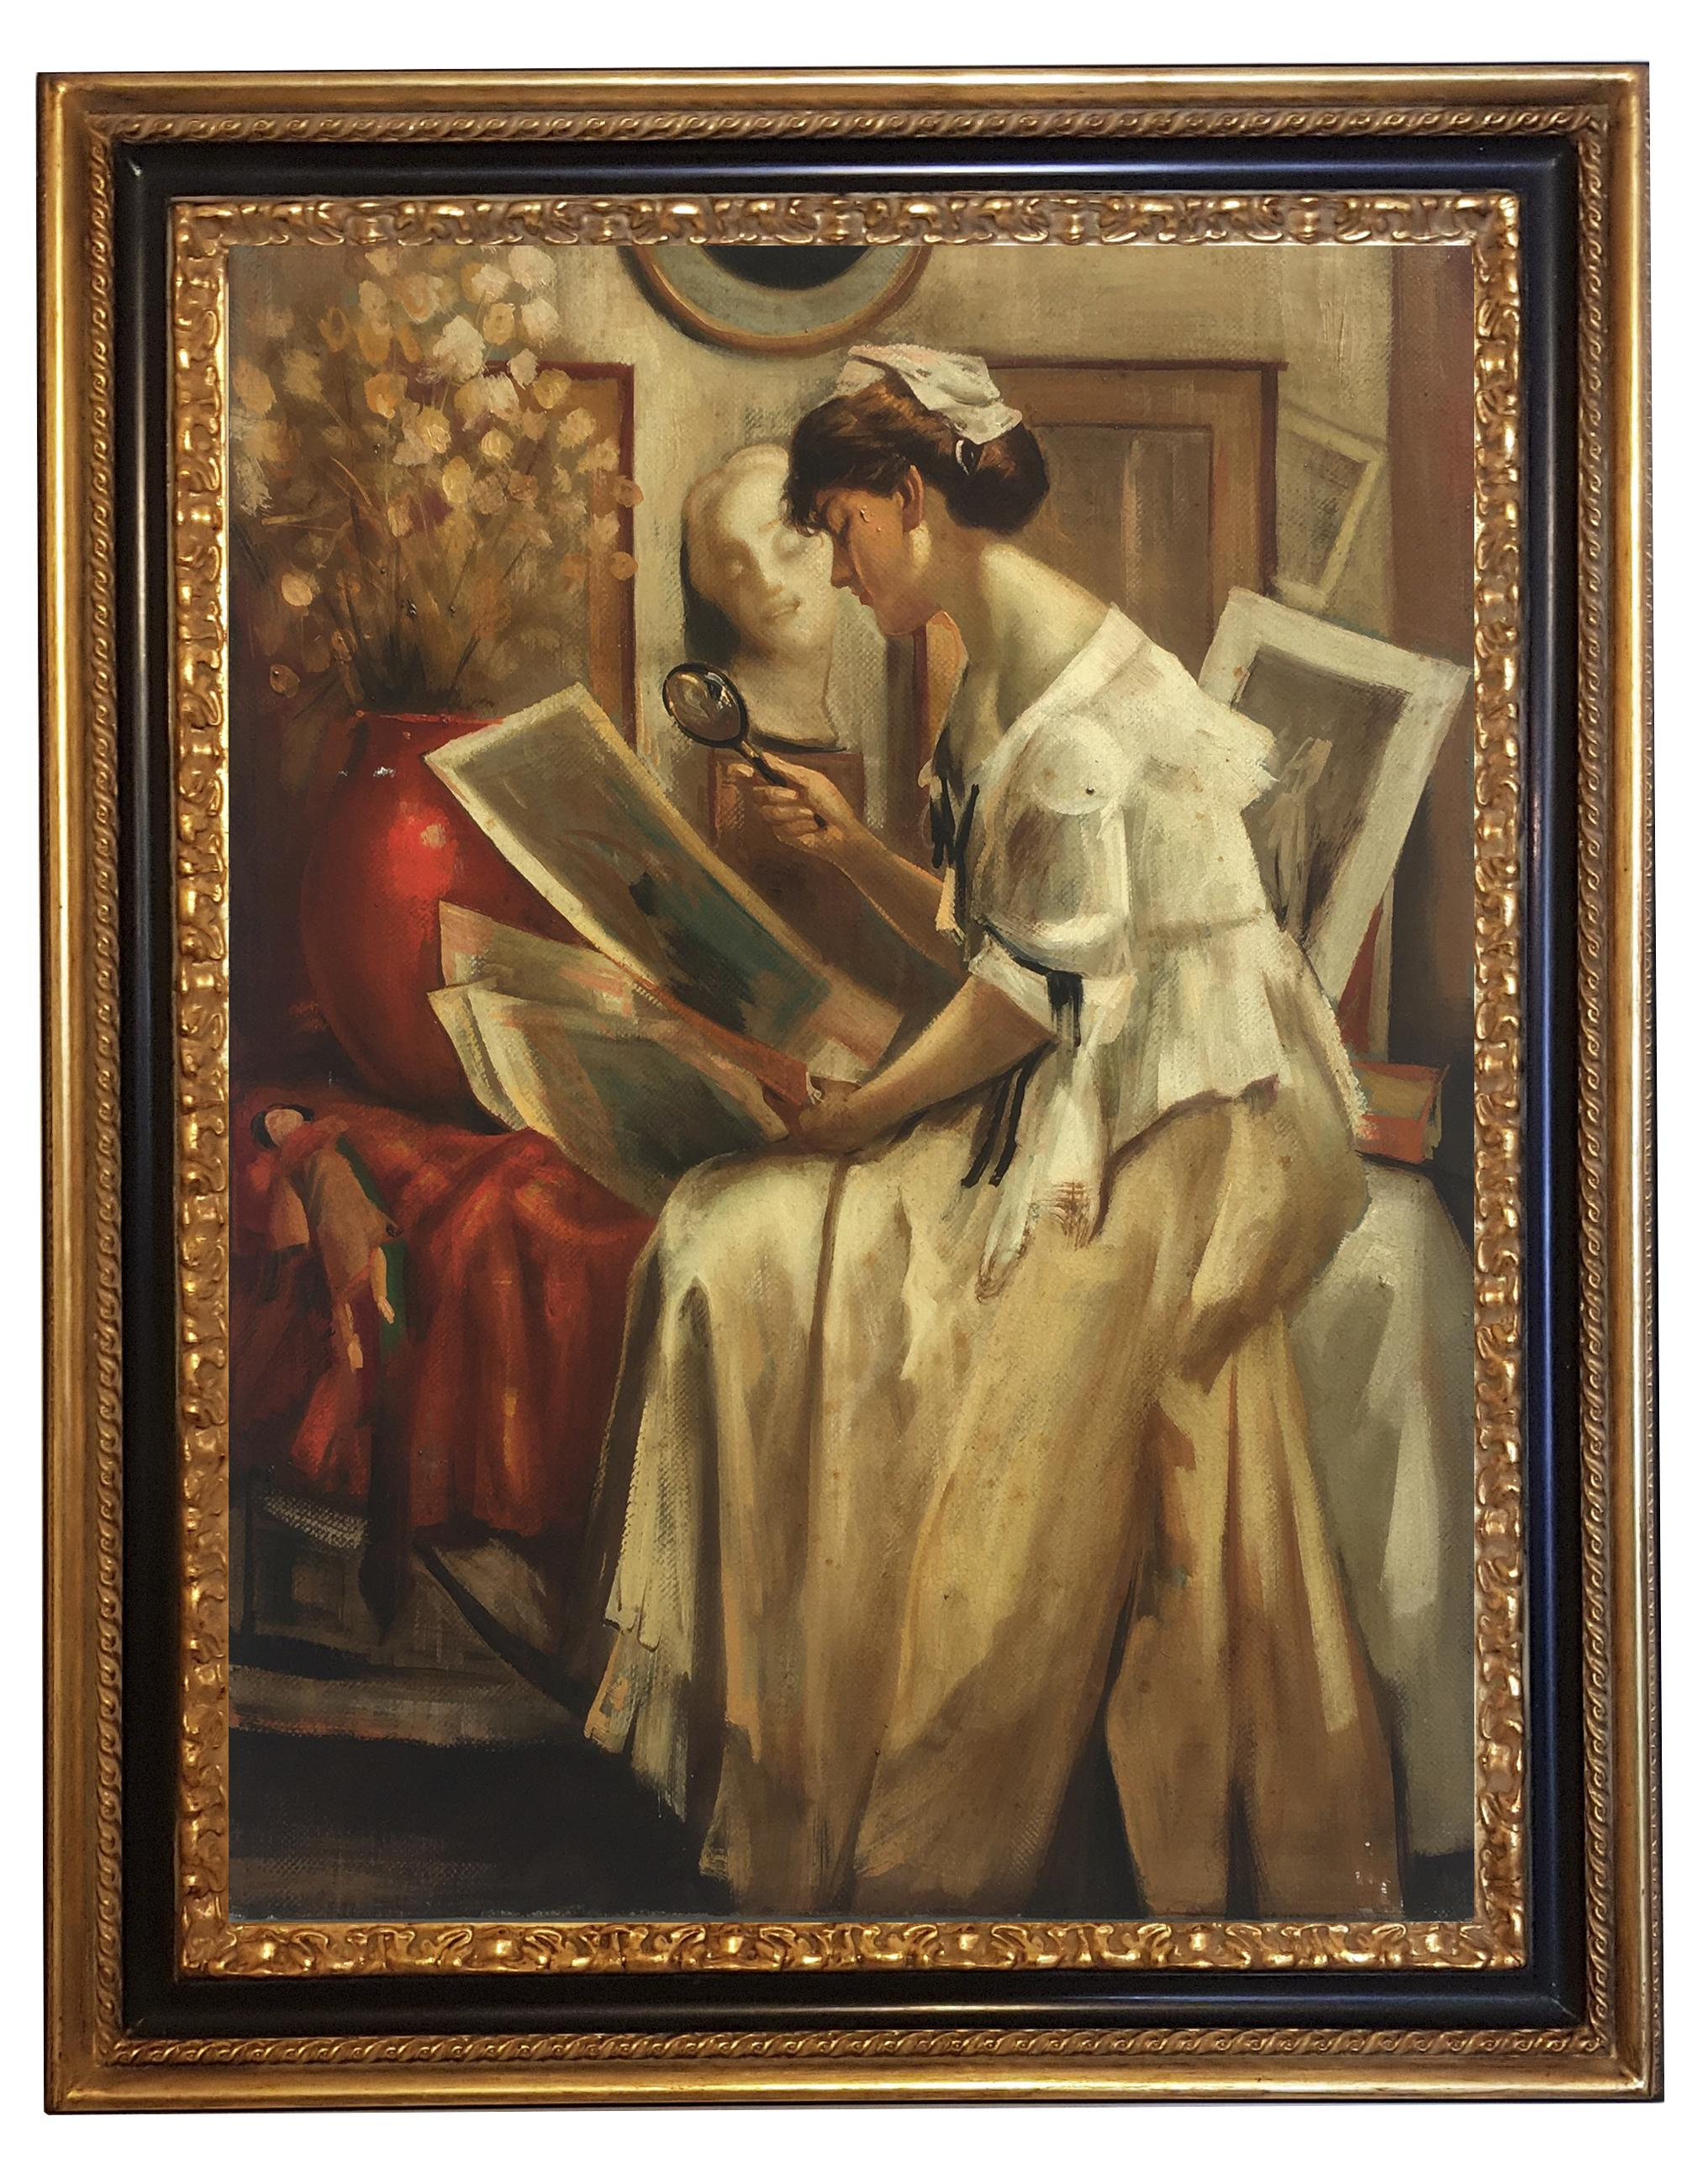 LADY READING - French School - Figurative Italian Oil on canvas painting